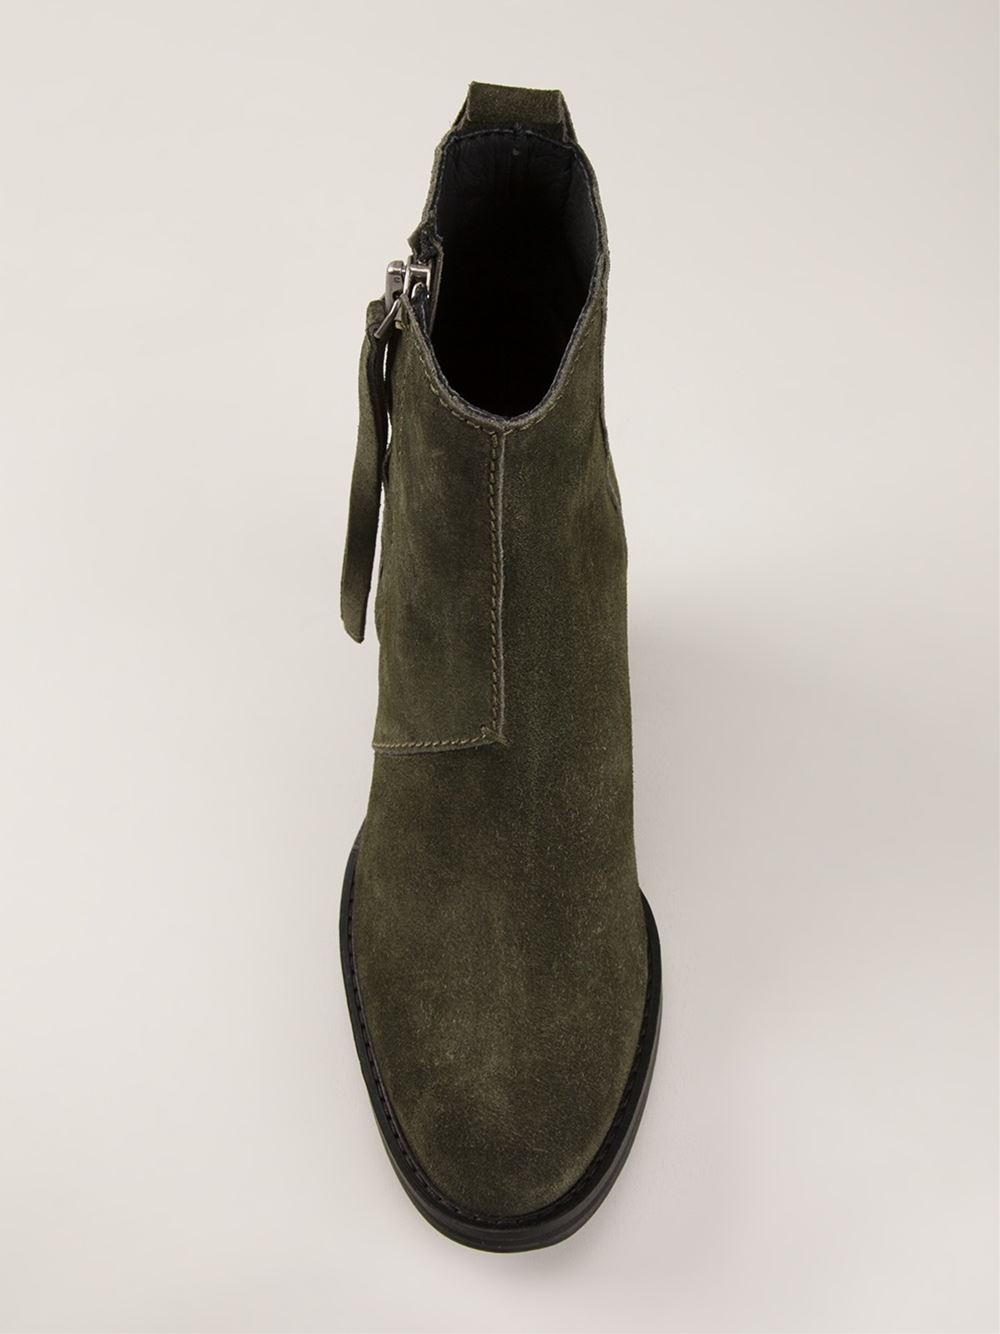 Acne 'Pistol' Ankle Boots in Green | Lyst